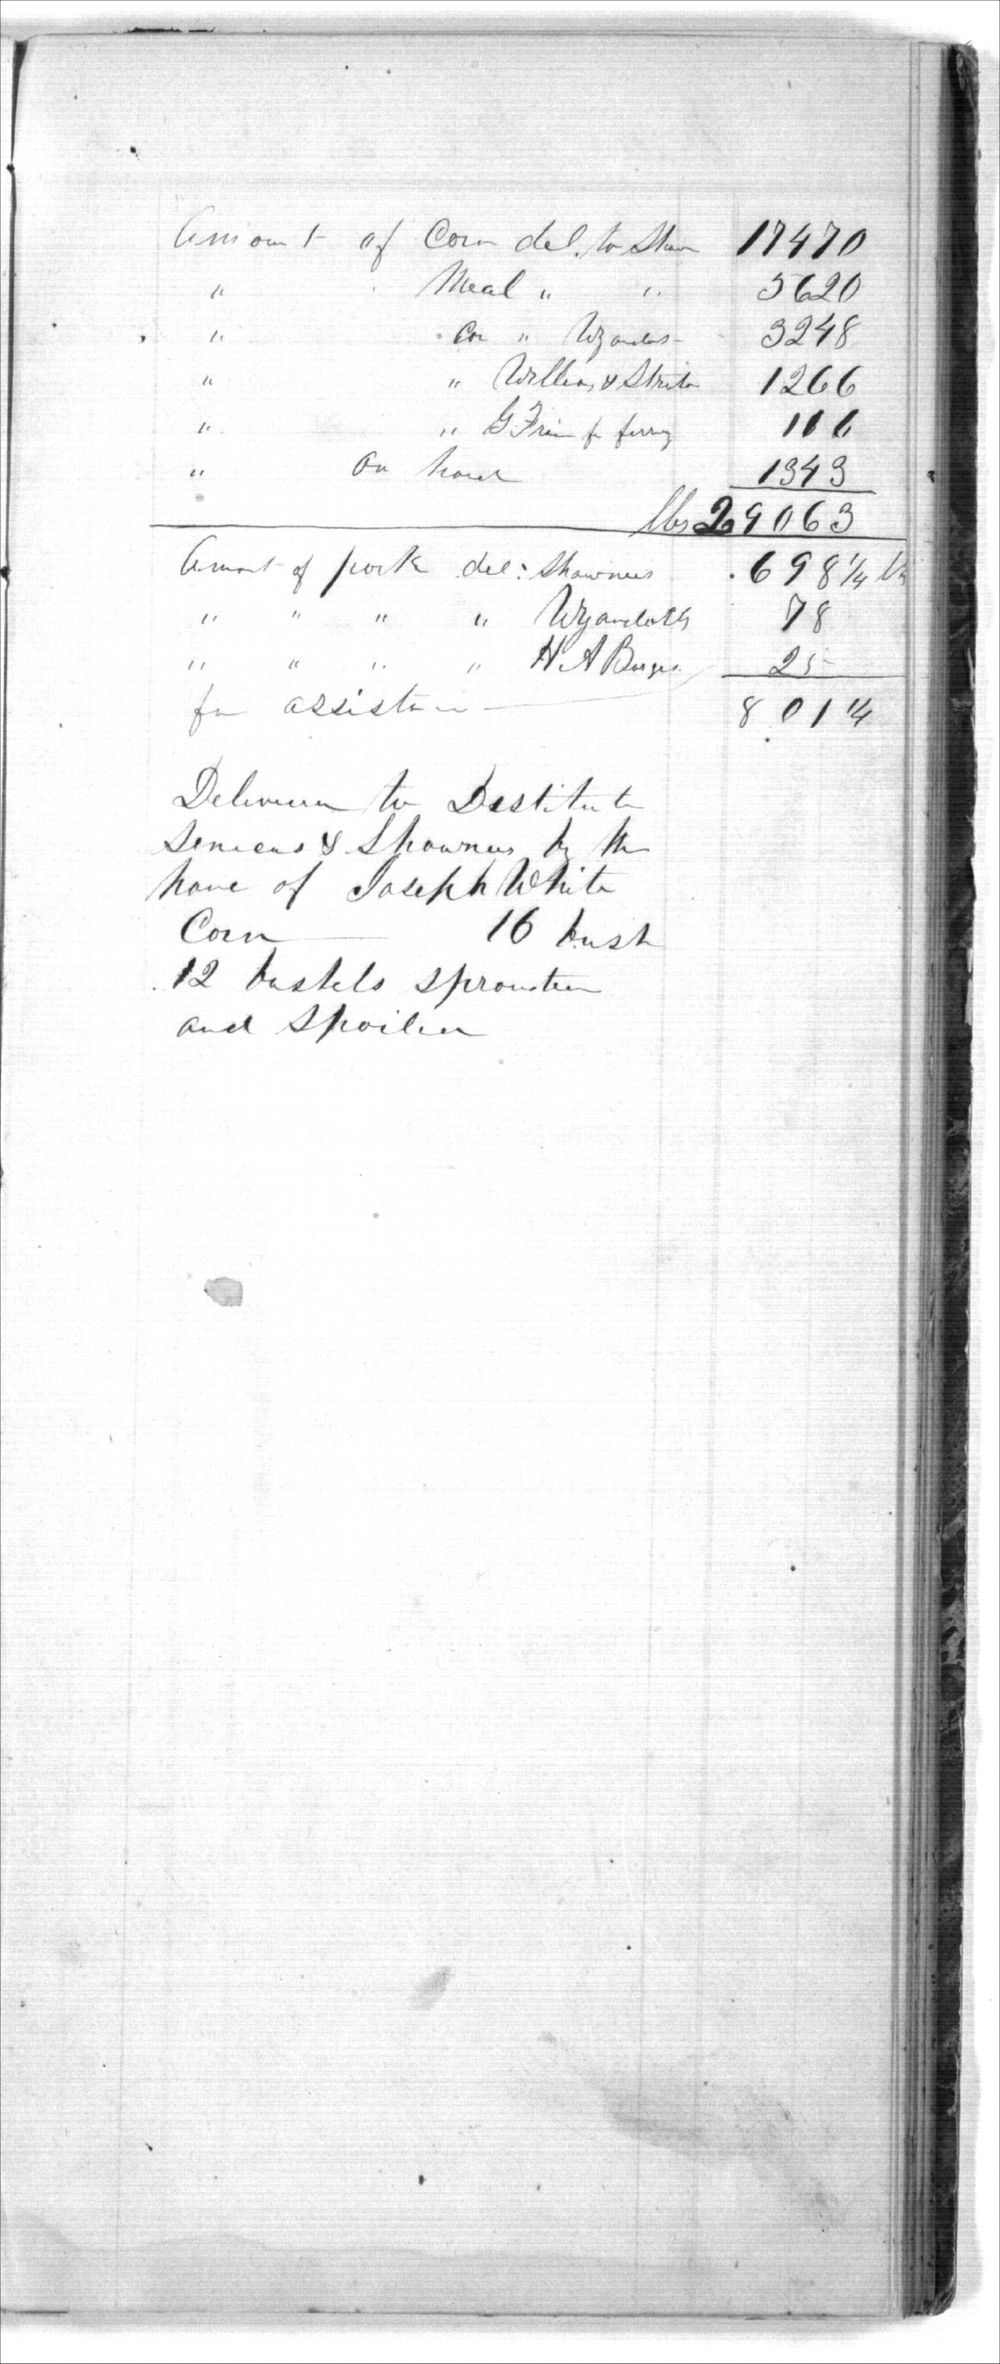 Account of provisions and supplies issued to destitute Shawnees - 6